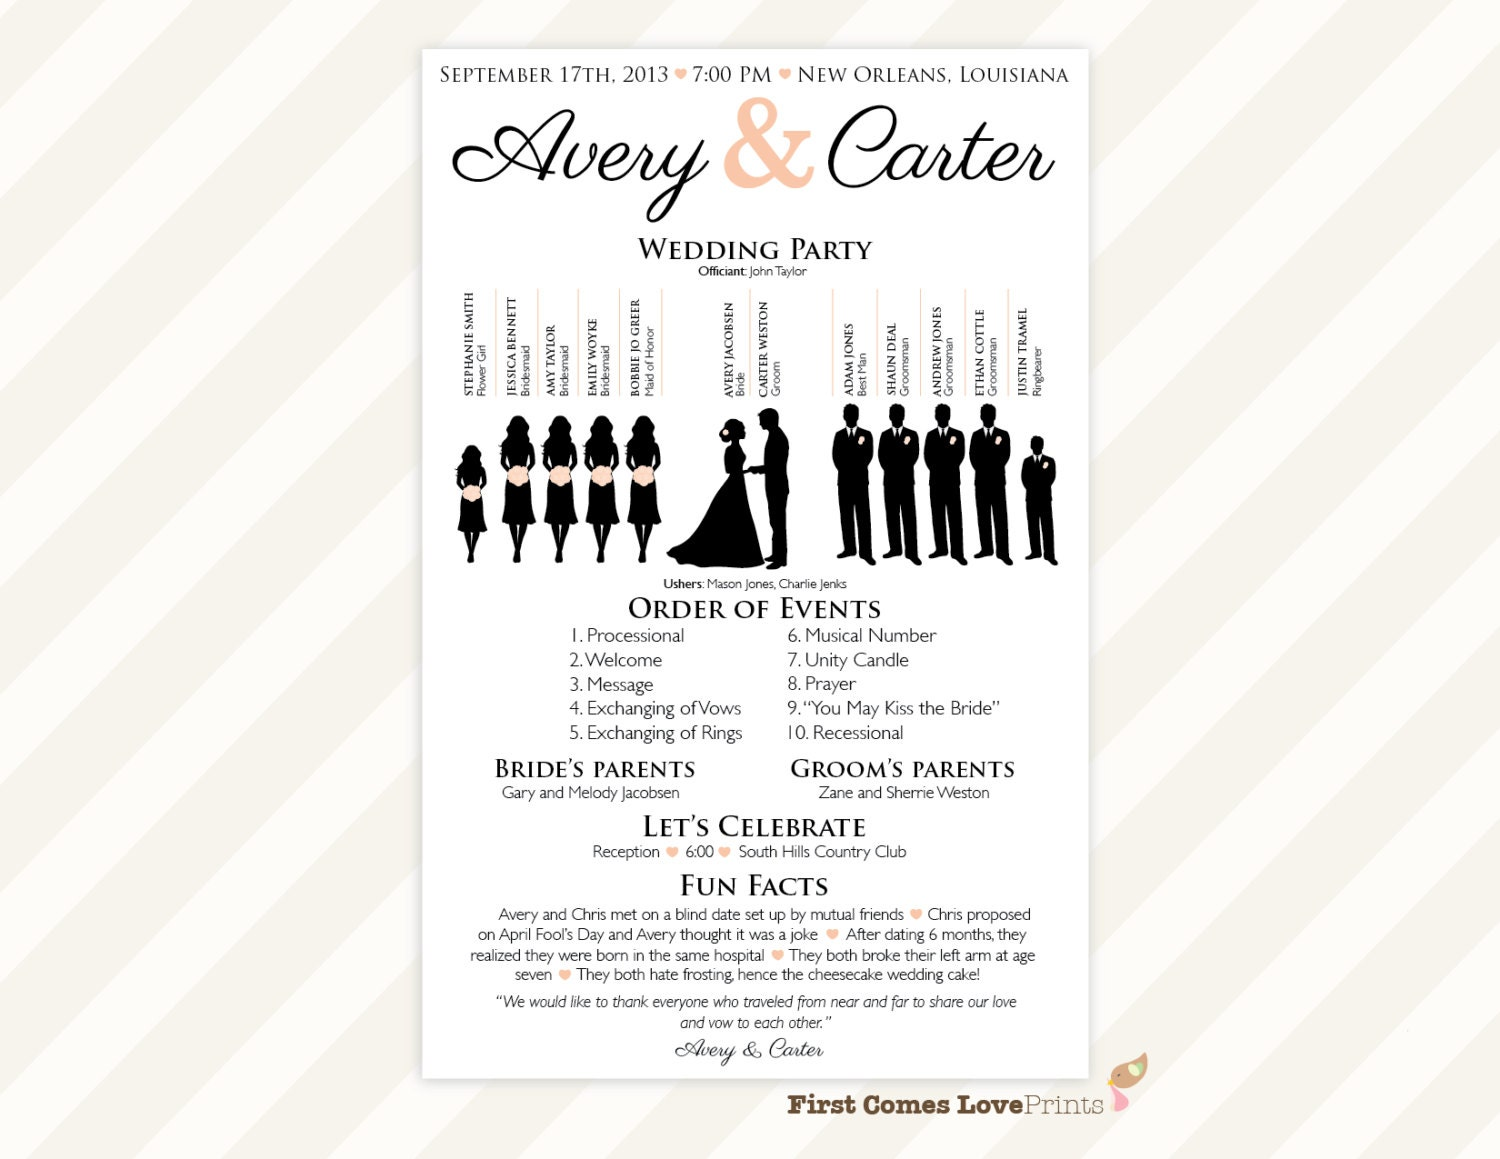 printable silhouette wedding program the avery. Black Bedroom Furniture Sets. Home Design Ideas